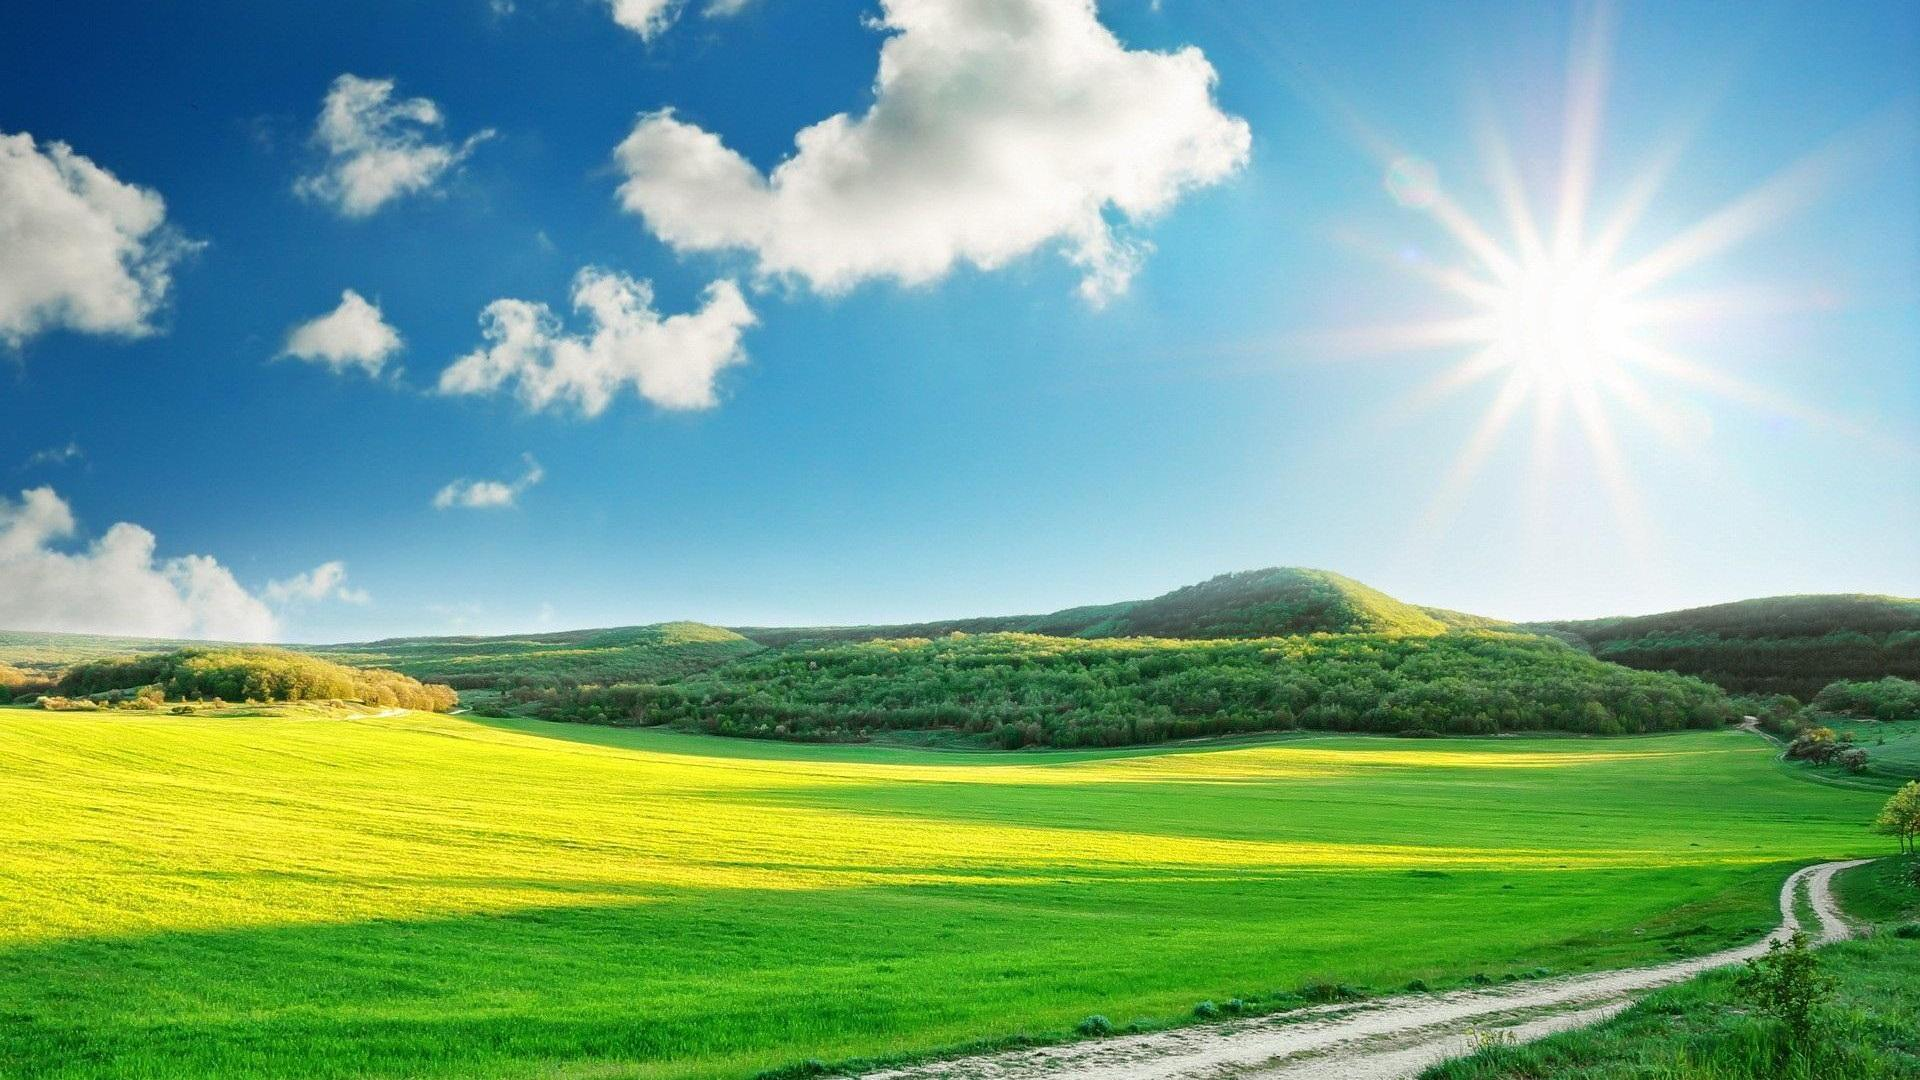 Beautiful Sunny Day Wallpaper Hq Desktop Wallpapers 1920x1080px